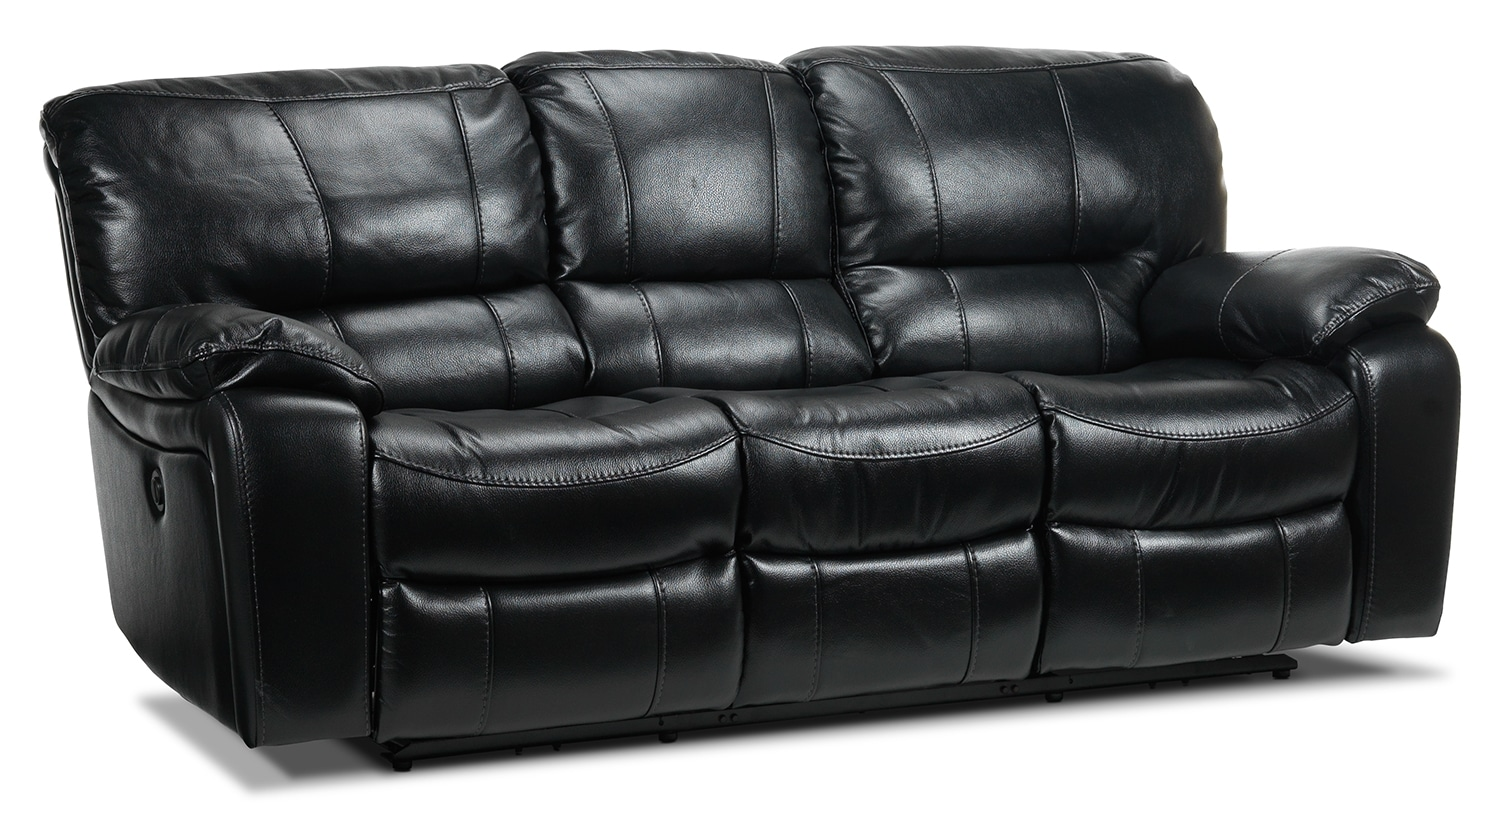 Santorini Power Reclining Sofa - Black